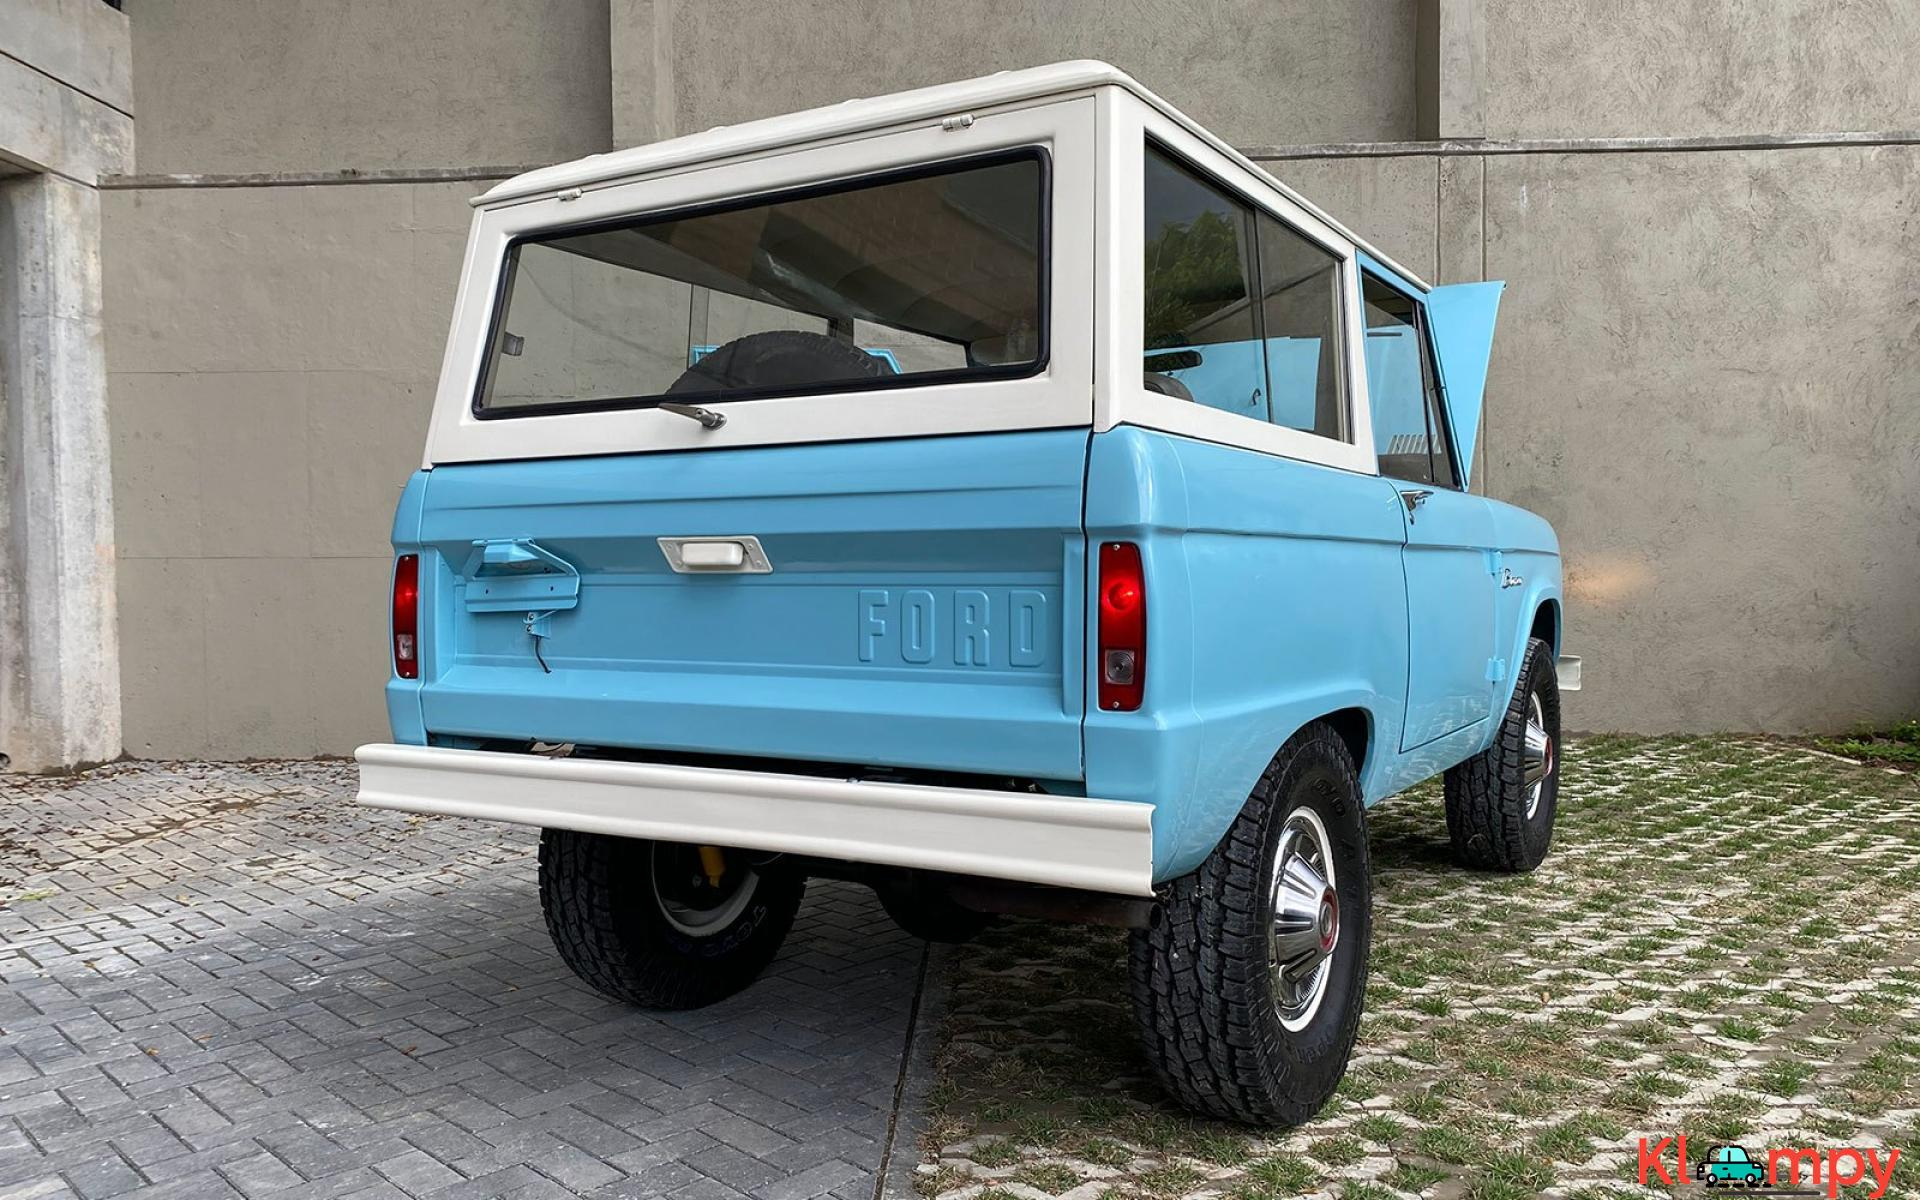 1967 Ford Bronco 170 Inline-Six - 7/21